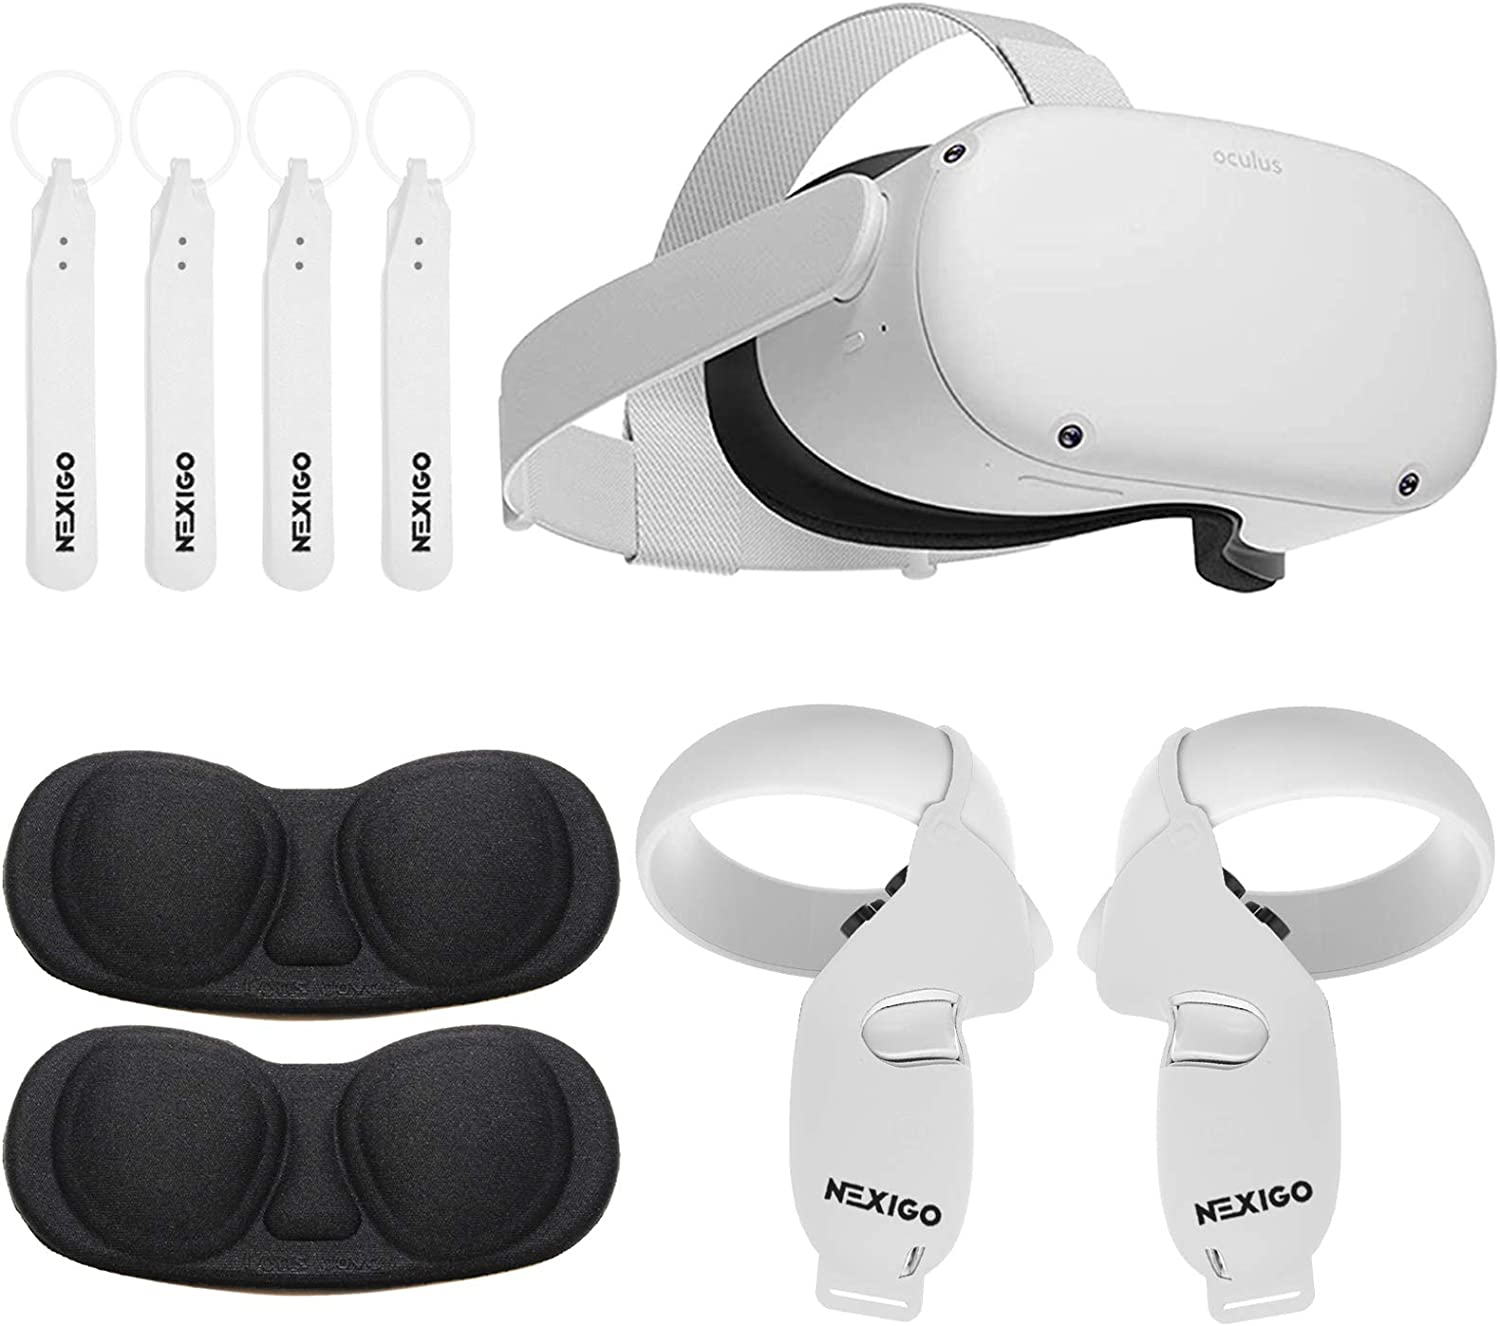 Oculus 2020 Newest Quest 2 VR 256GB Holiday Bundle, Advanced All-in-One Virtual Reality Gaming Headset, NexiGo Controller Grip Cover White + Knuckle Strap + Lens Protect Cover Accessory Bundle